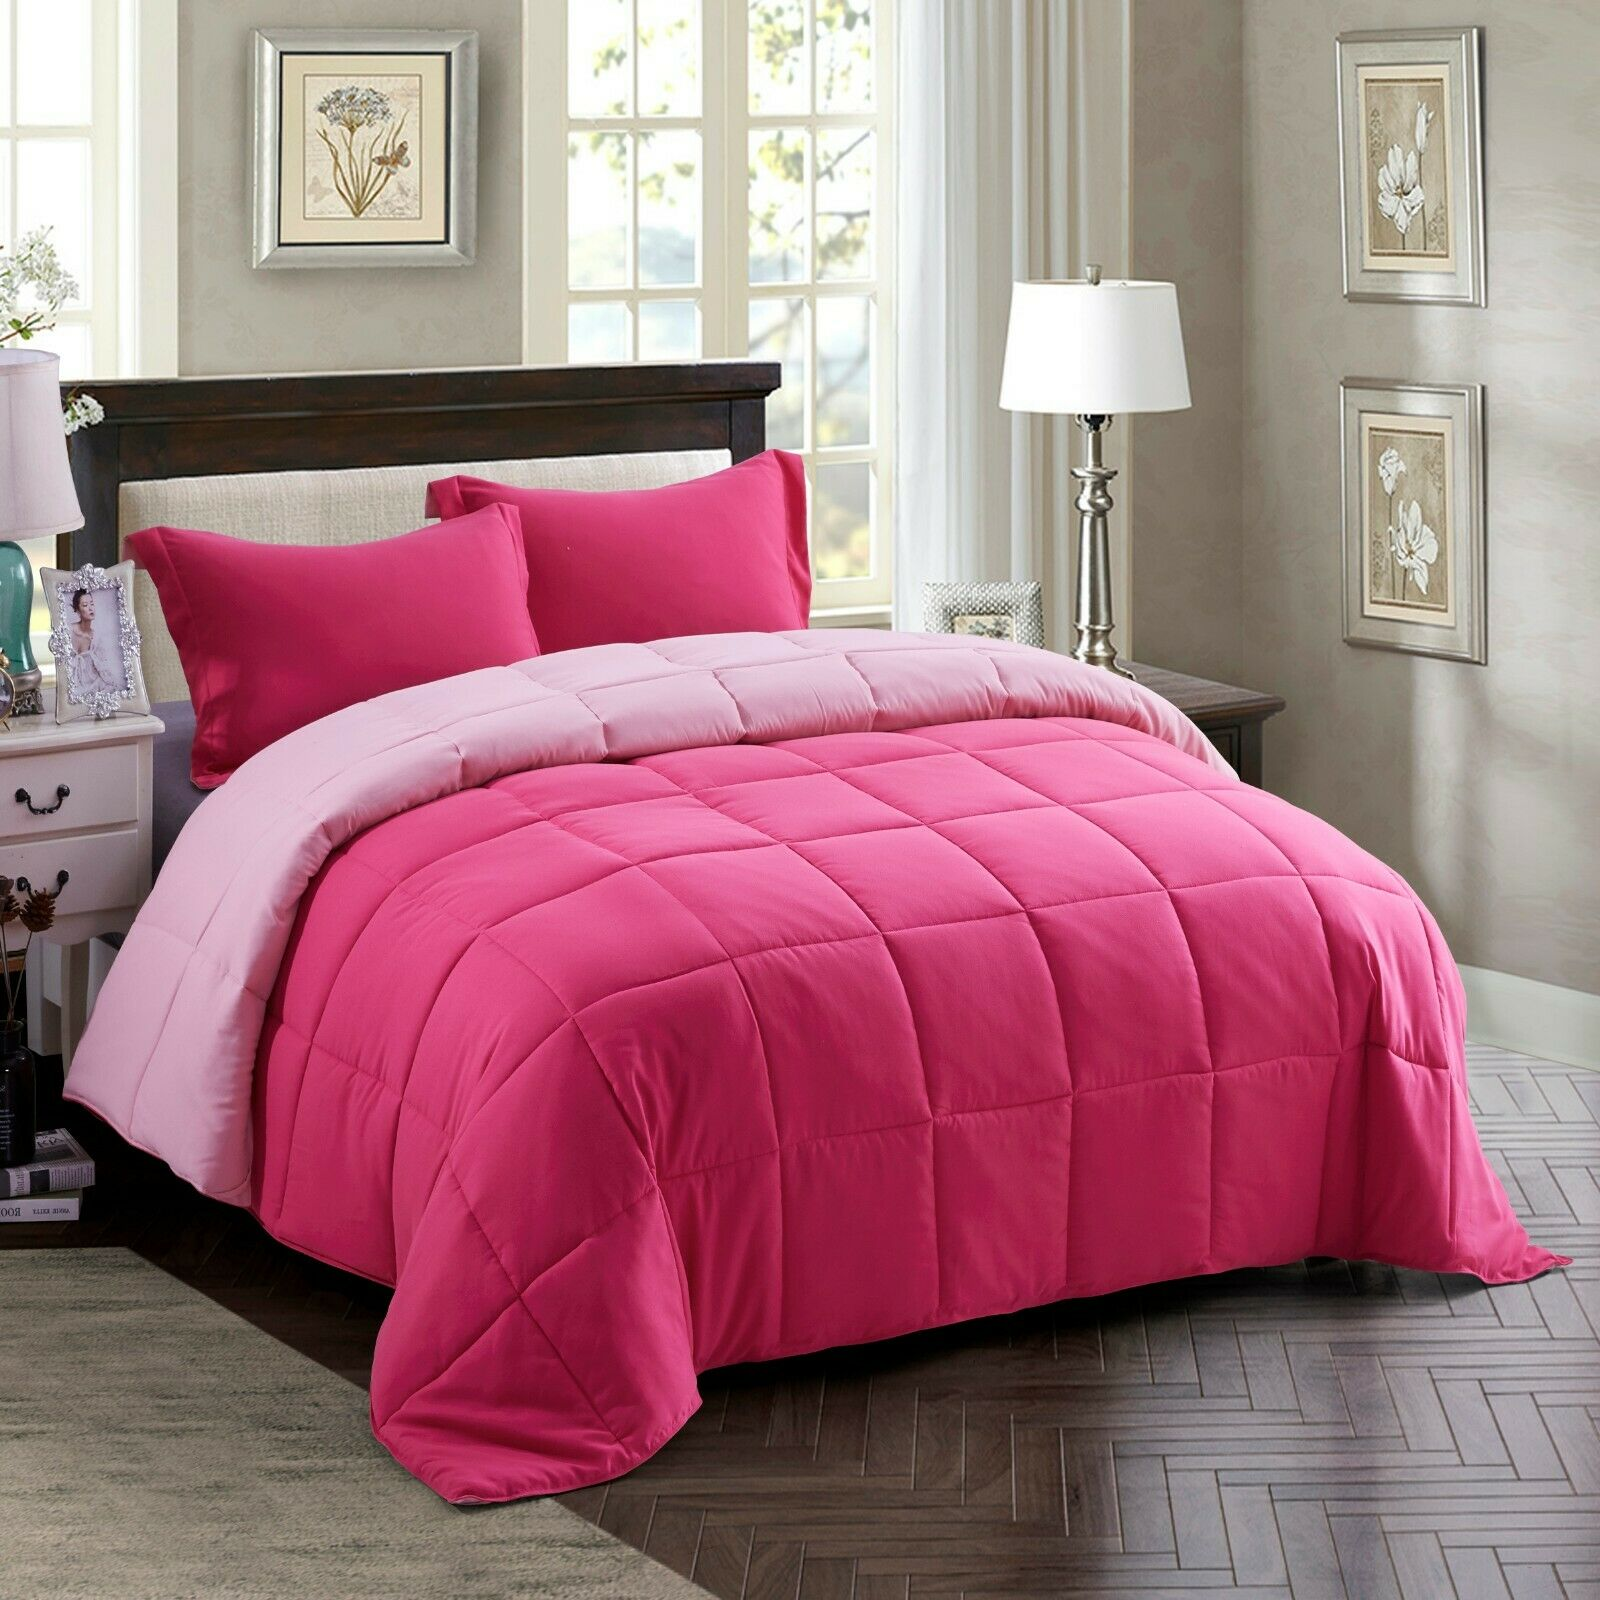 Ugg Redding Reversible Full Queen Comforter Set In Navy Grey For Sale Online Ebay